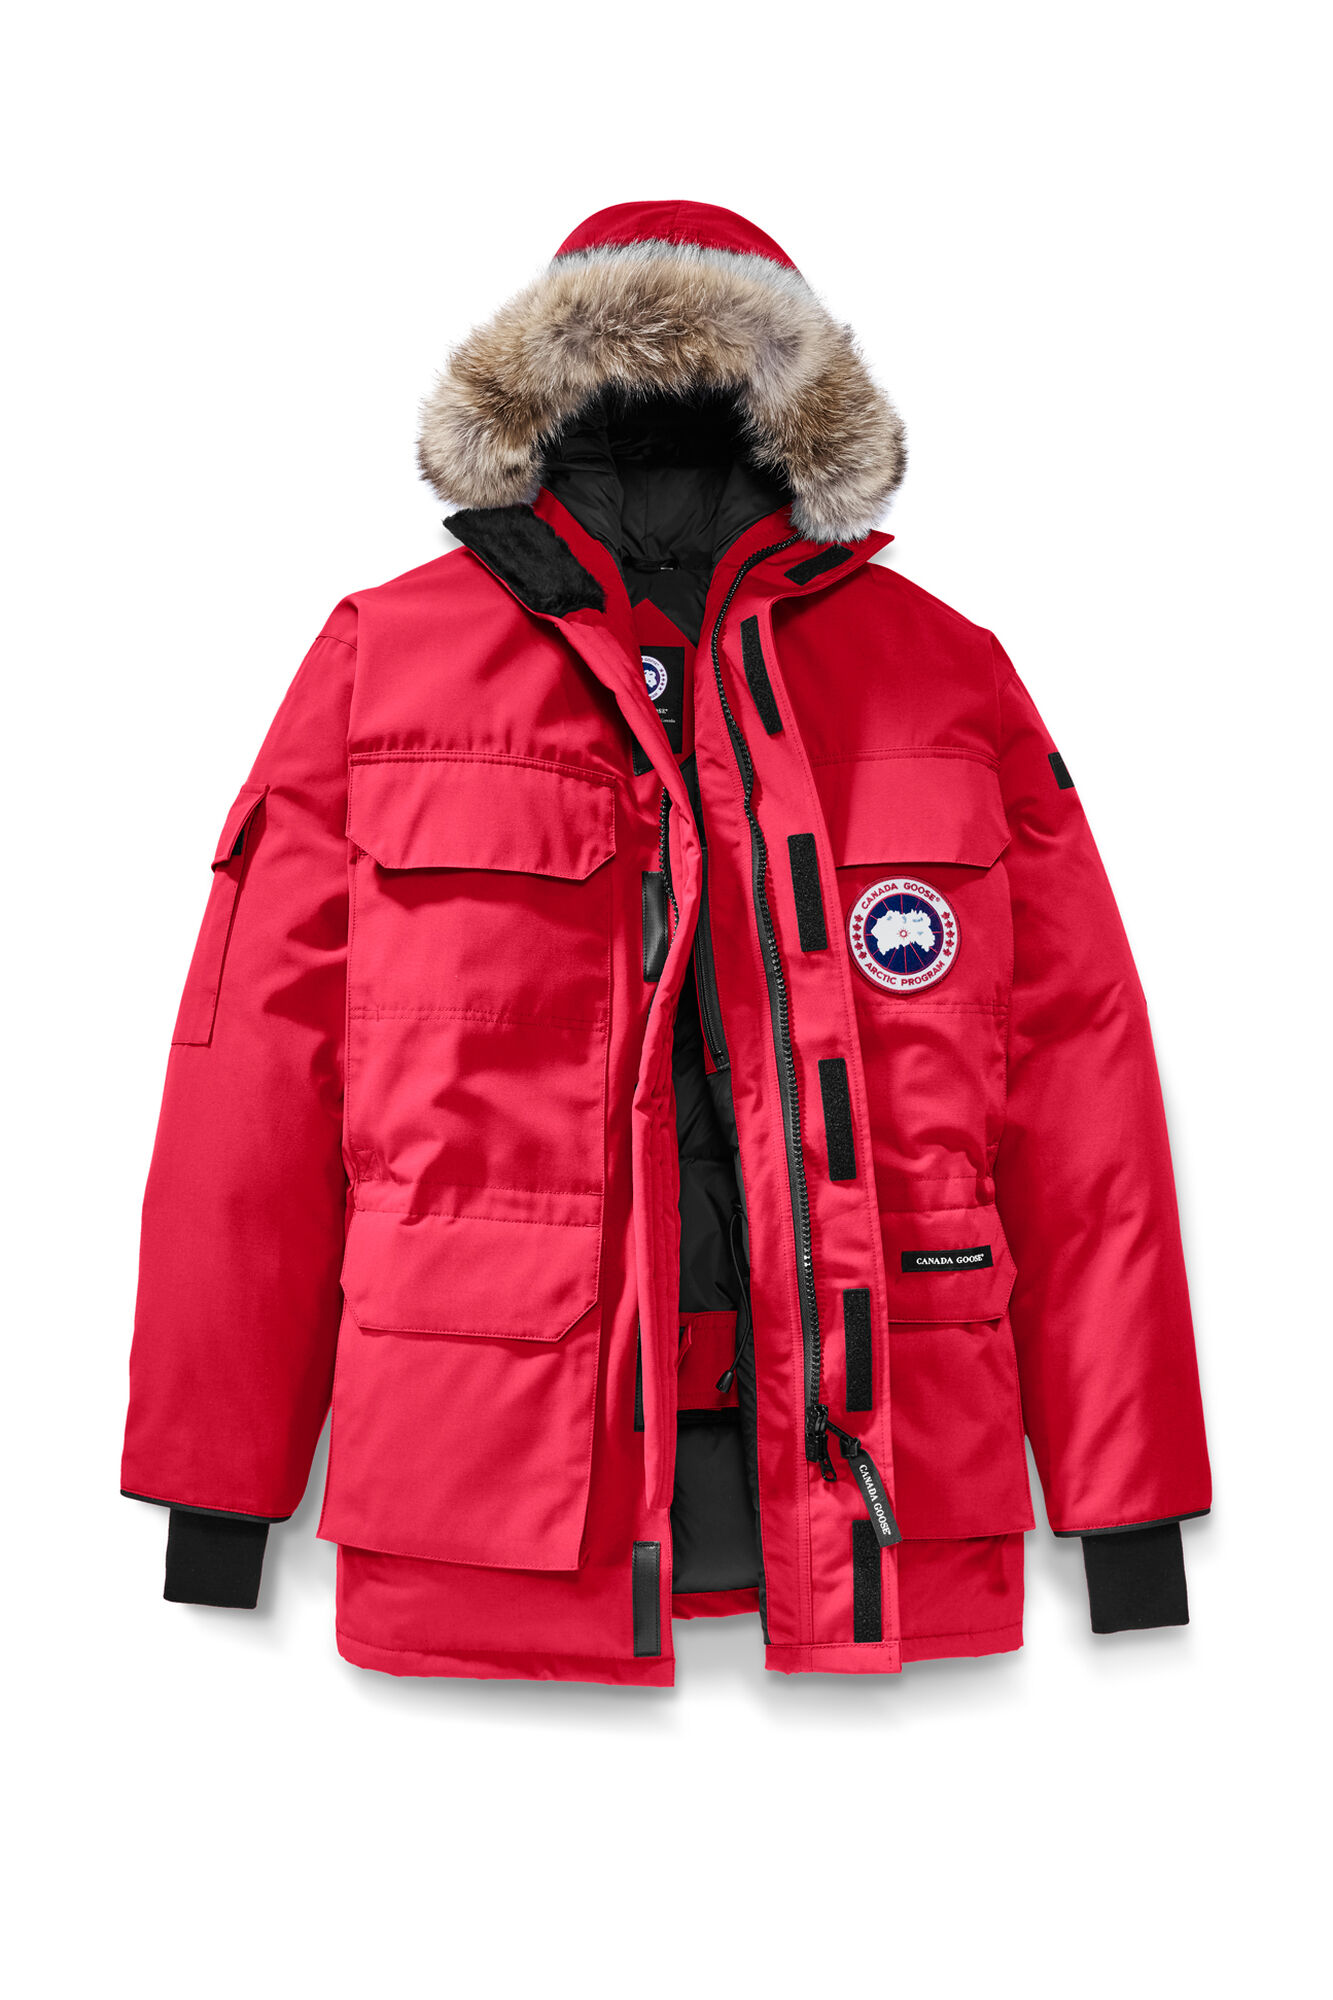 Canada Goose' Expedition Coat